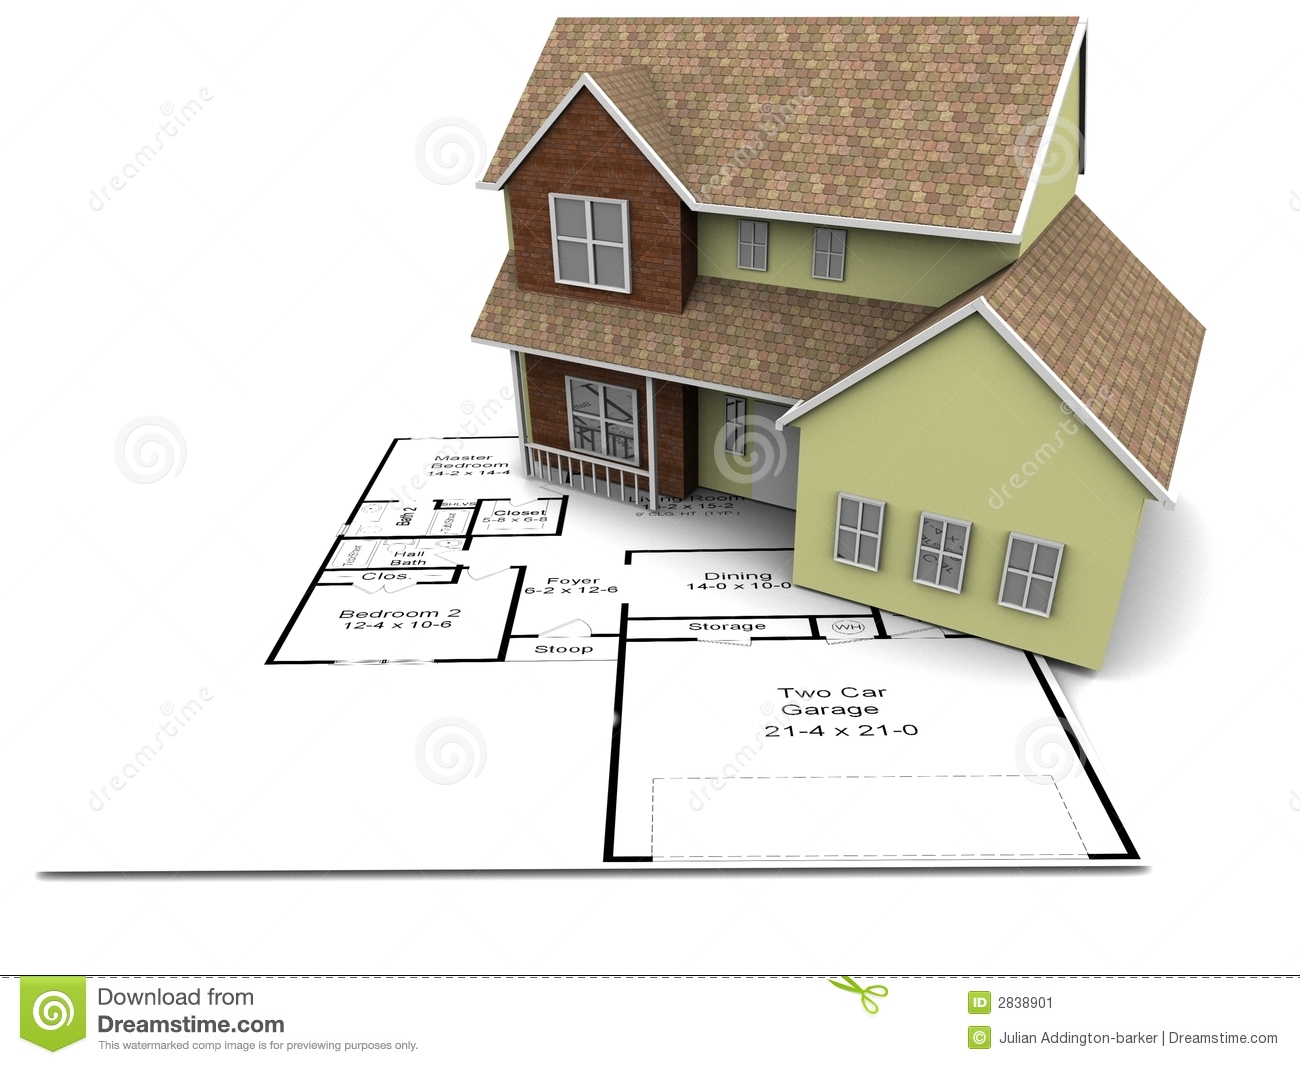 New house plans stock image image 2838901 for New house blueprints